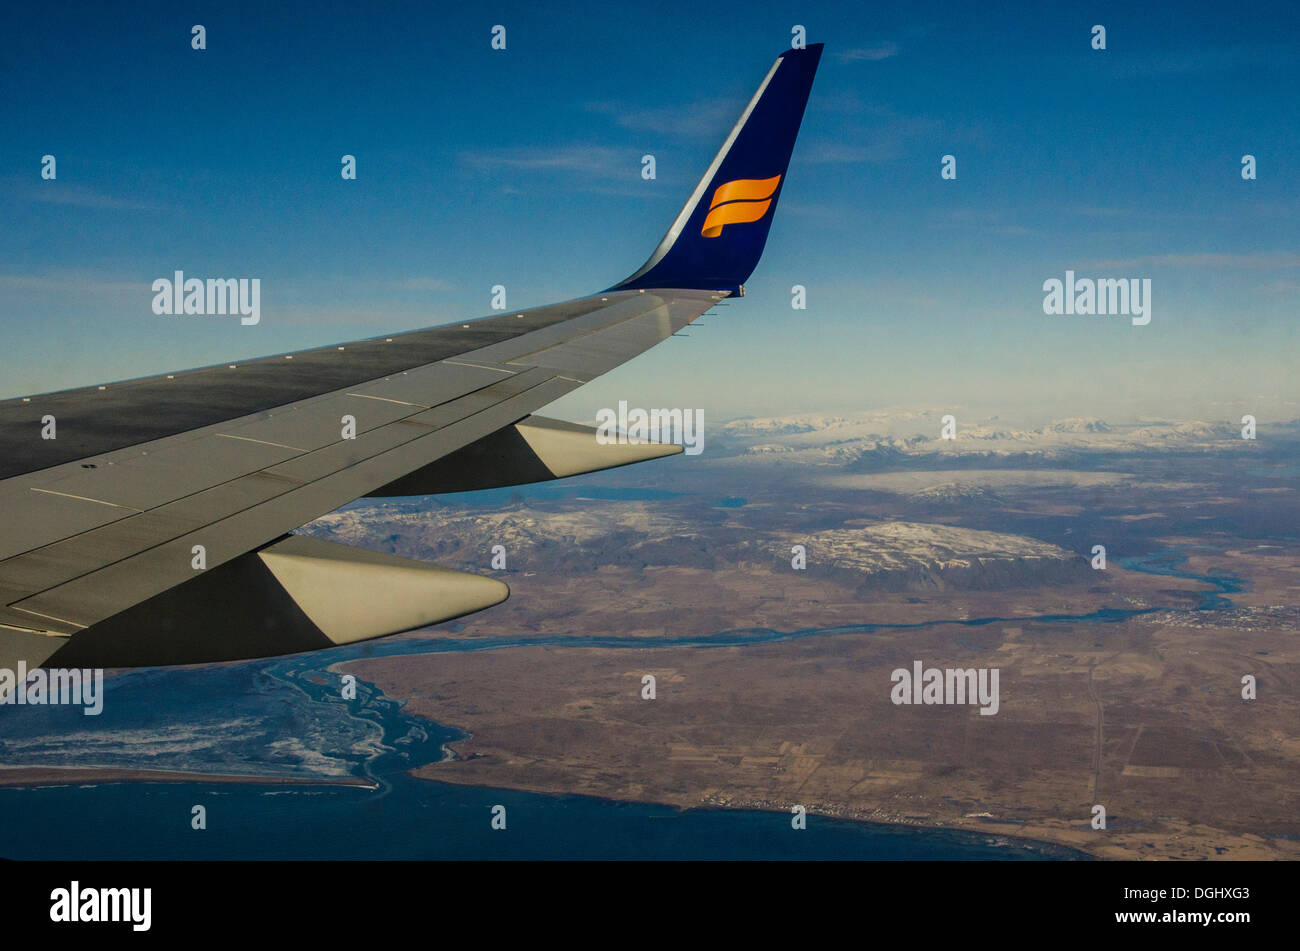 Wing of an airplane over Southern Iceland, landing approach to Reykjavik, Südisland, Iceland - Stock Image